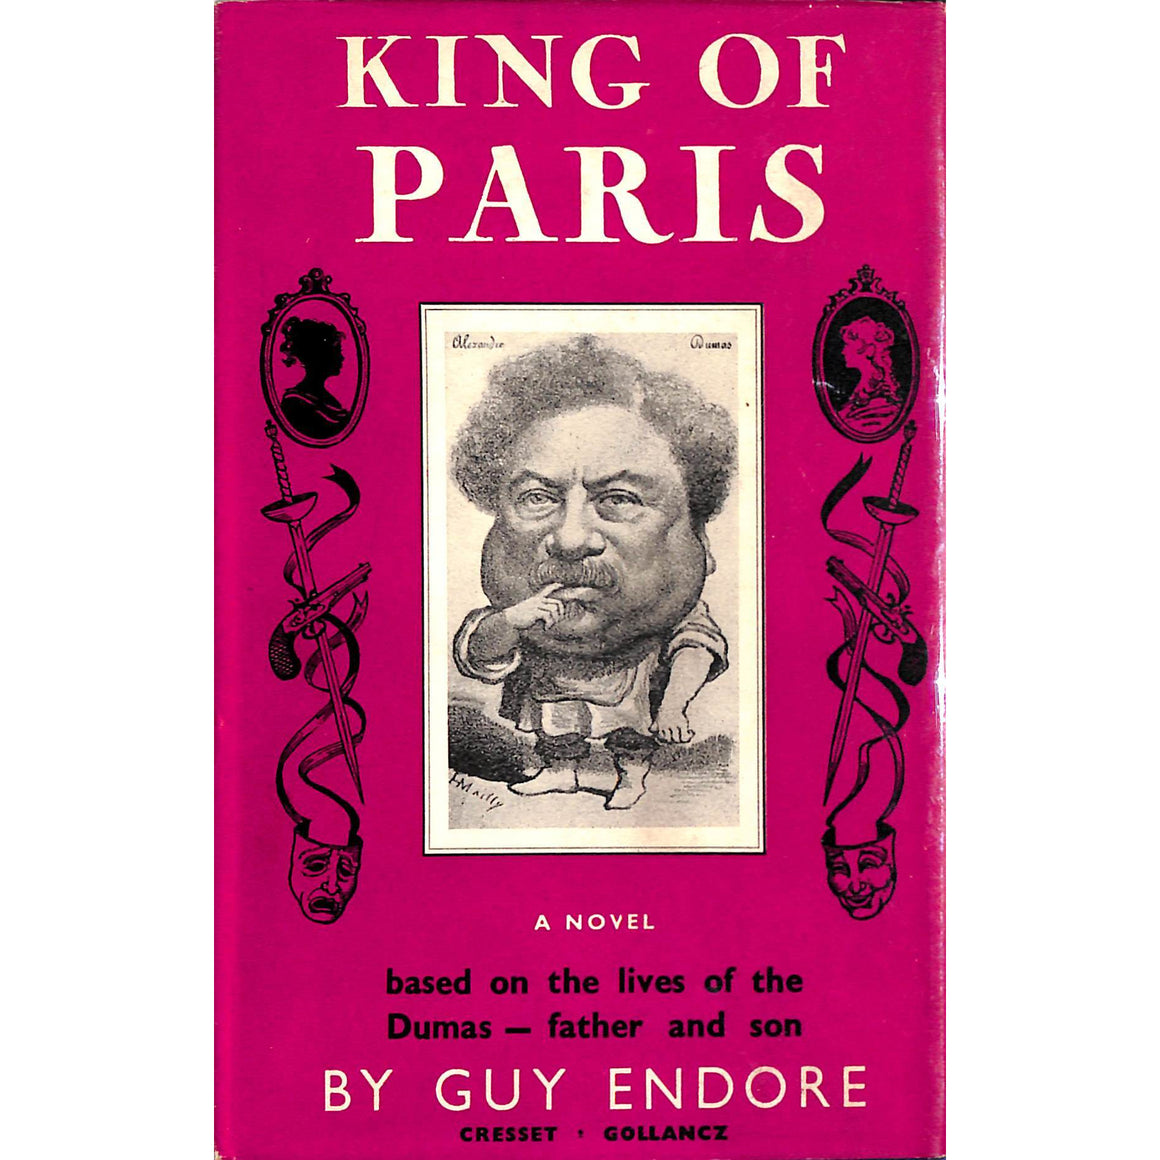 King of Paris